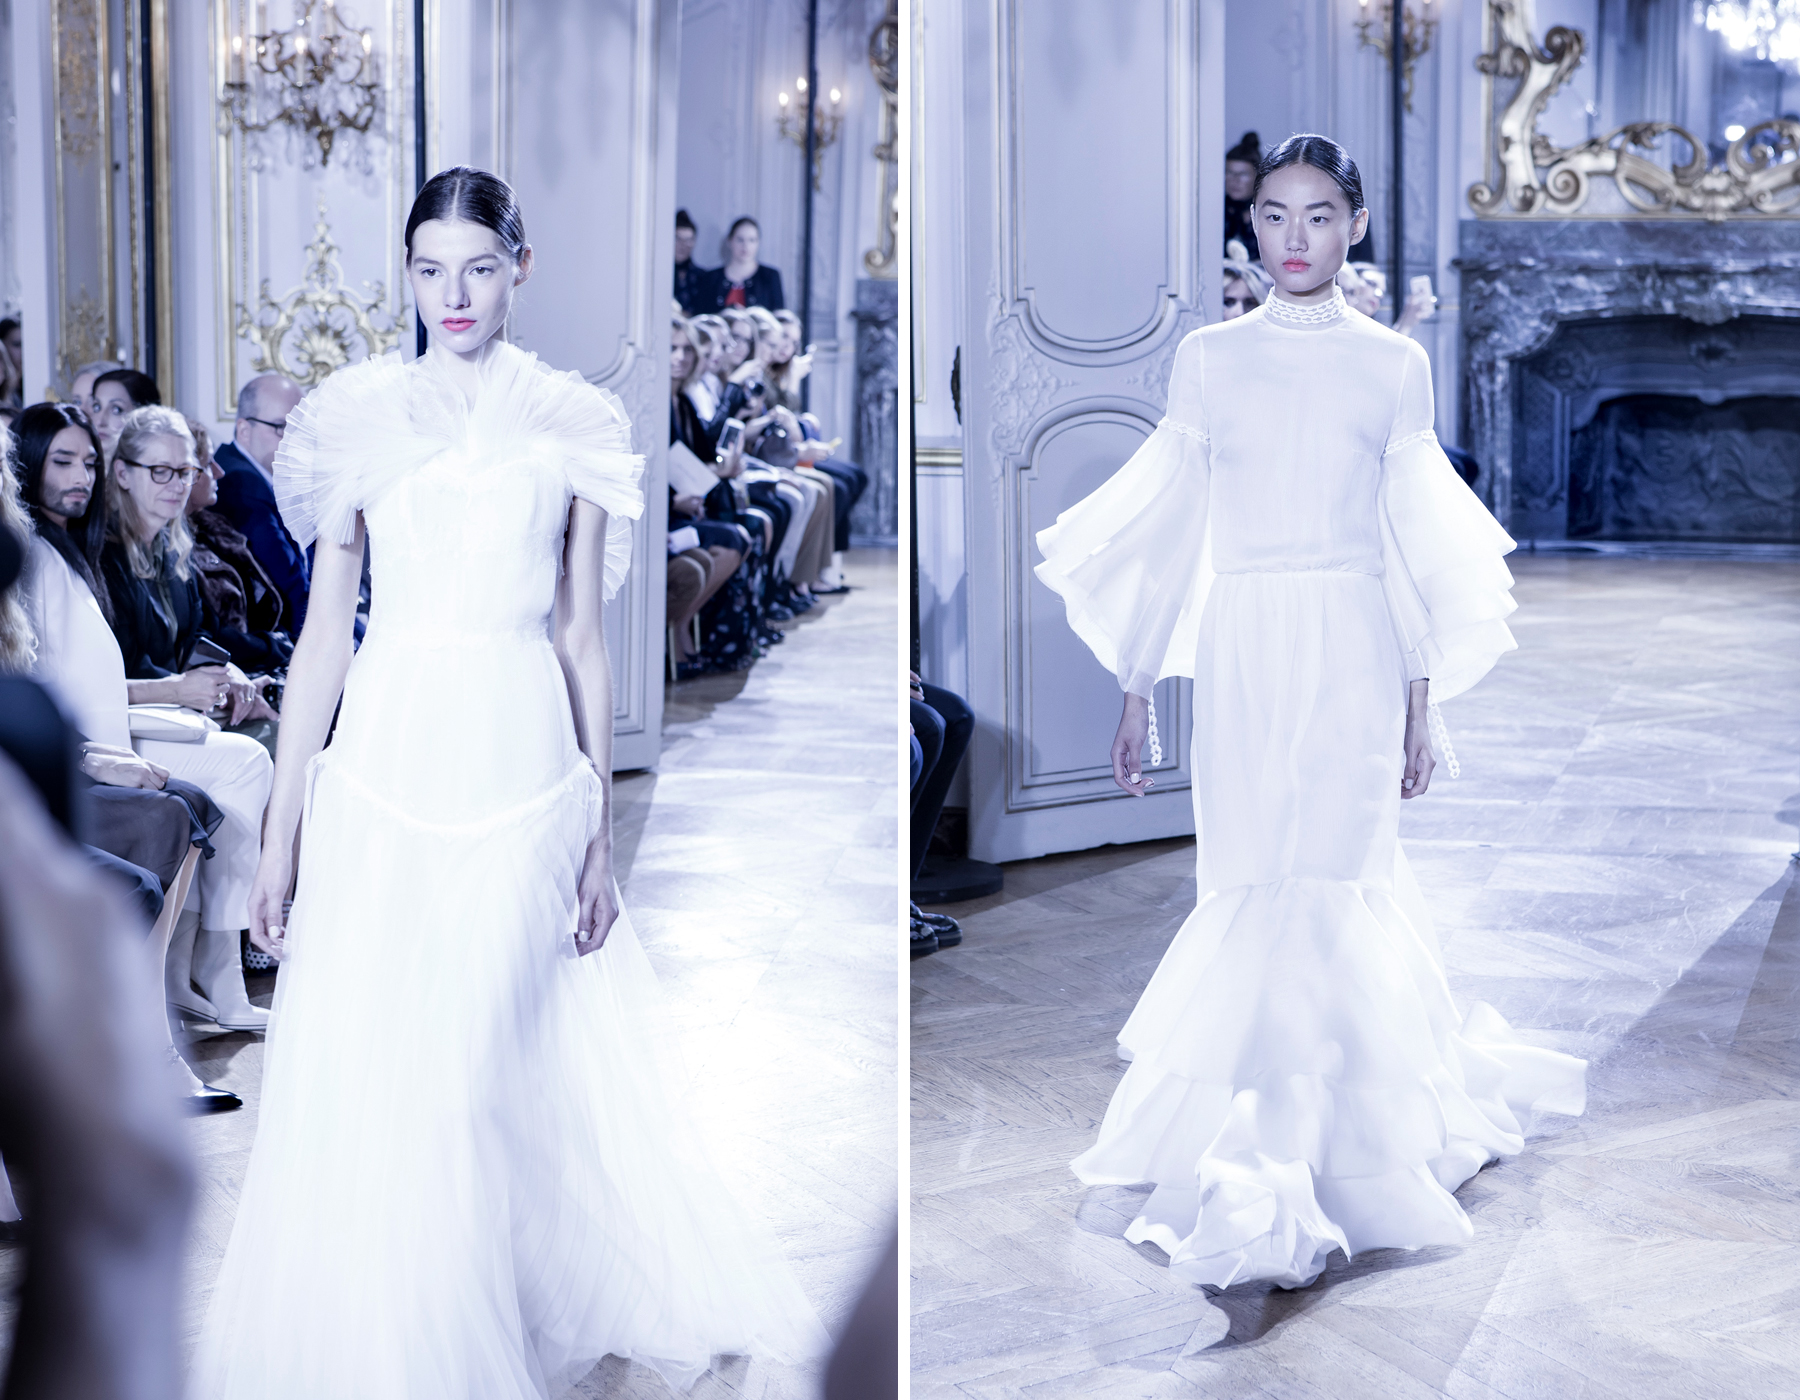 kaviar gauche s/s 2016 paris fashion week pfw presentation bridal dresses white makeup catrice cosmetics brautmode fashionblogger ricarda schernus cats & dogs blog 4